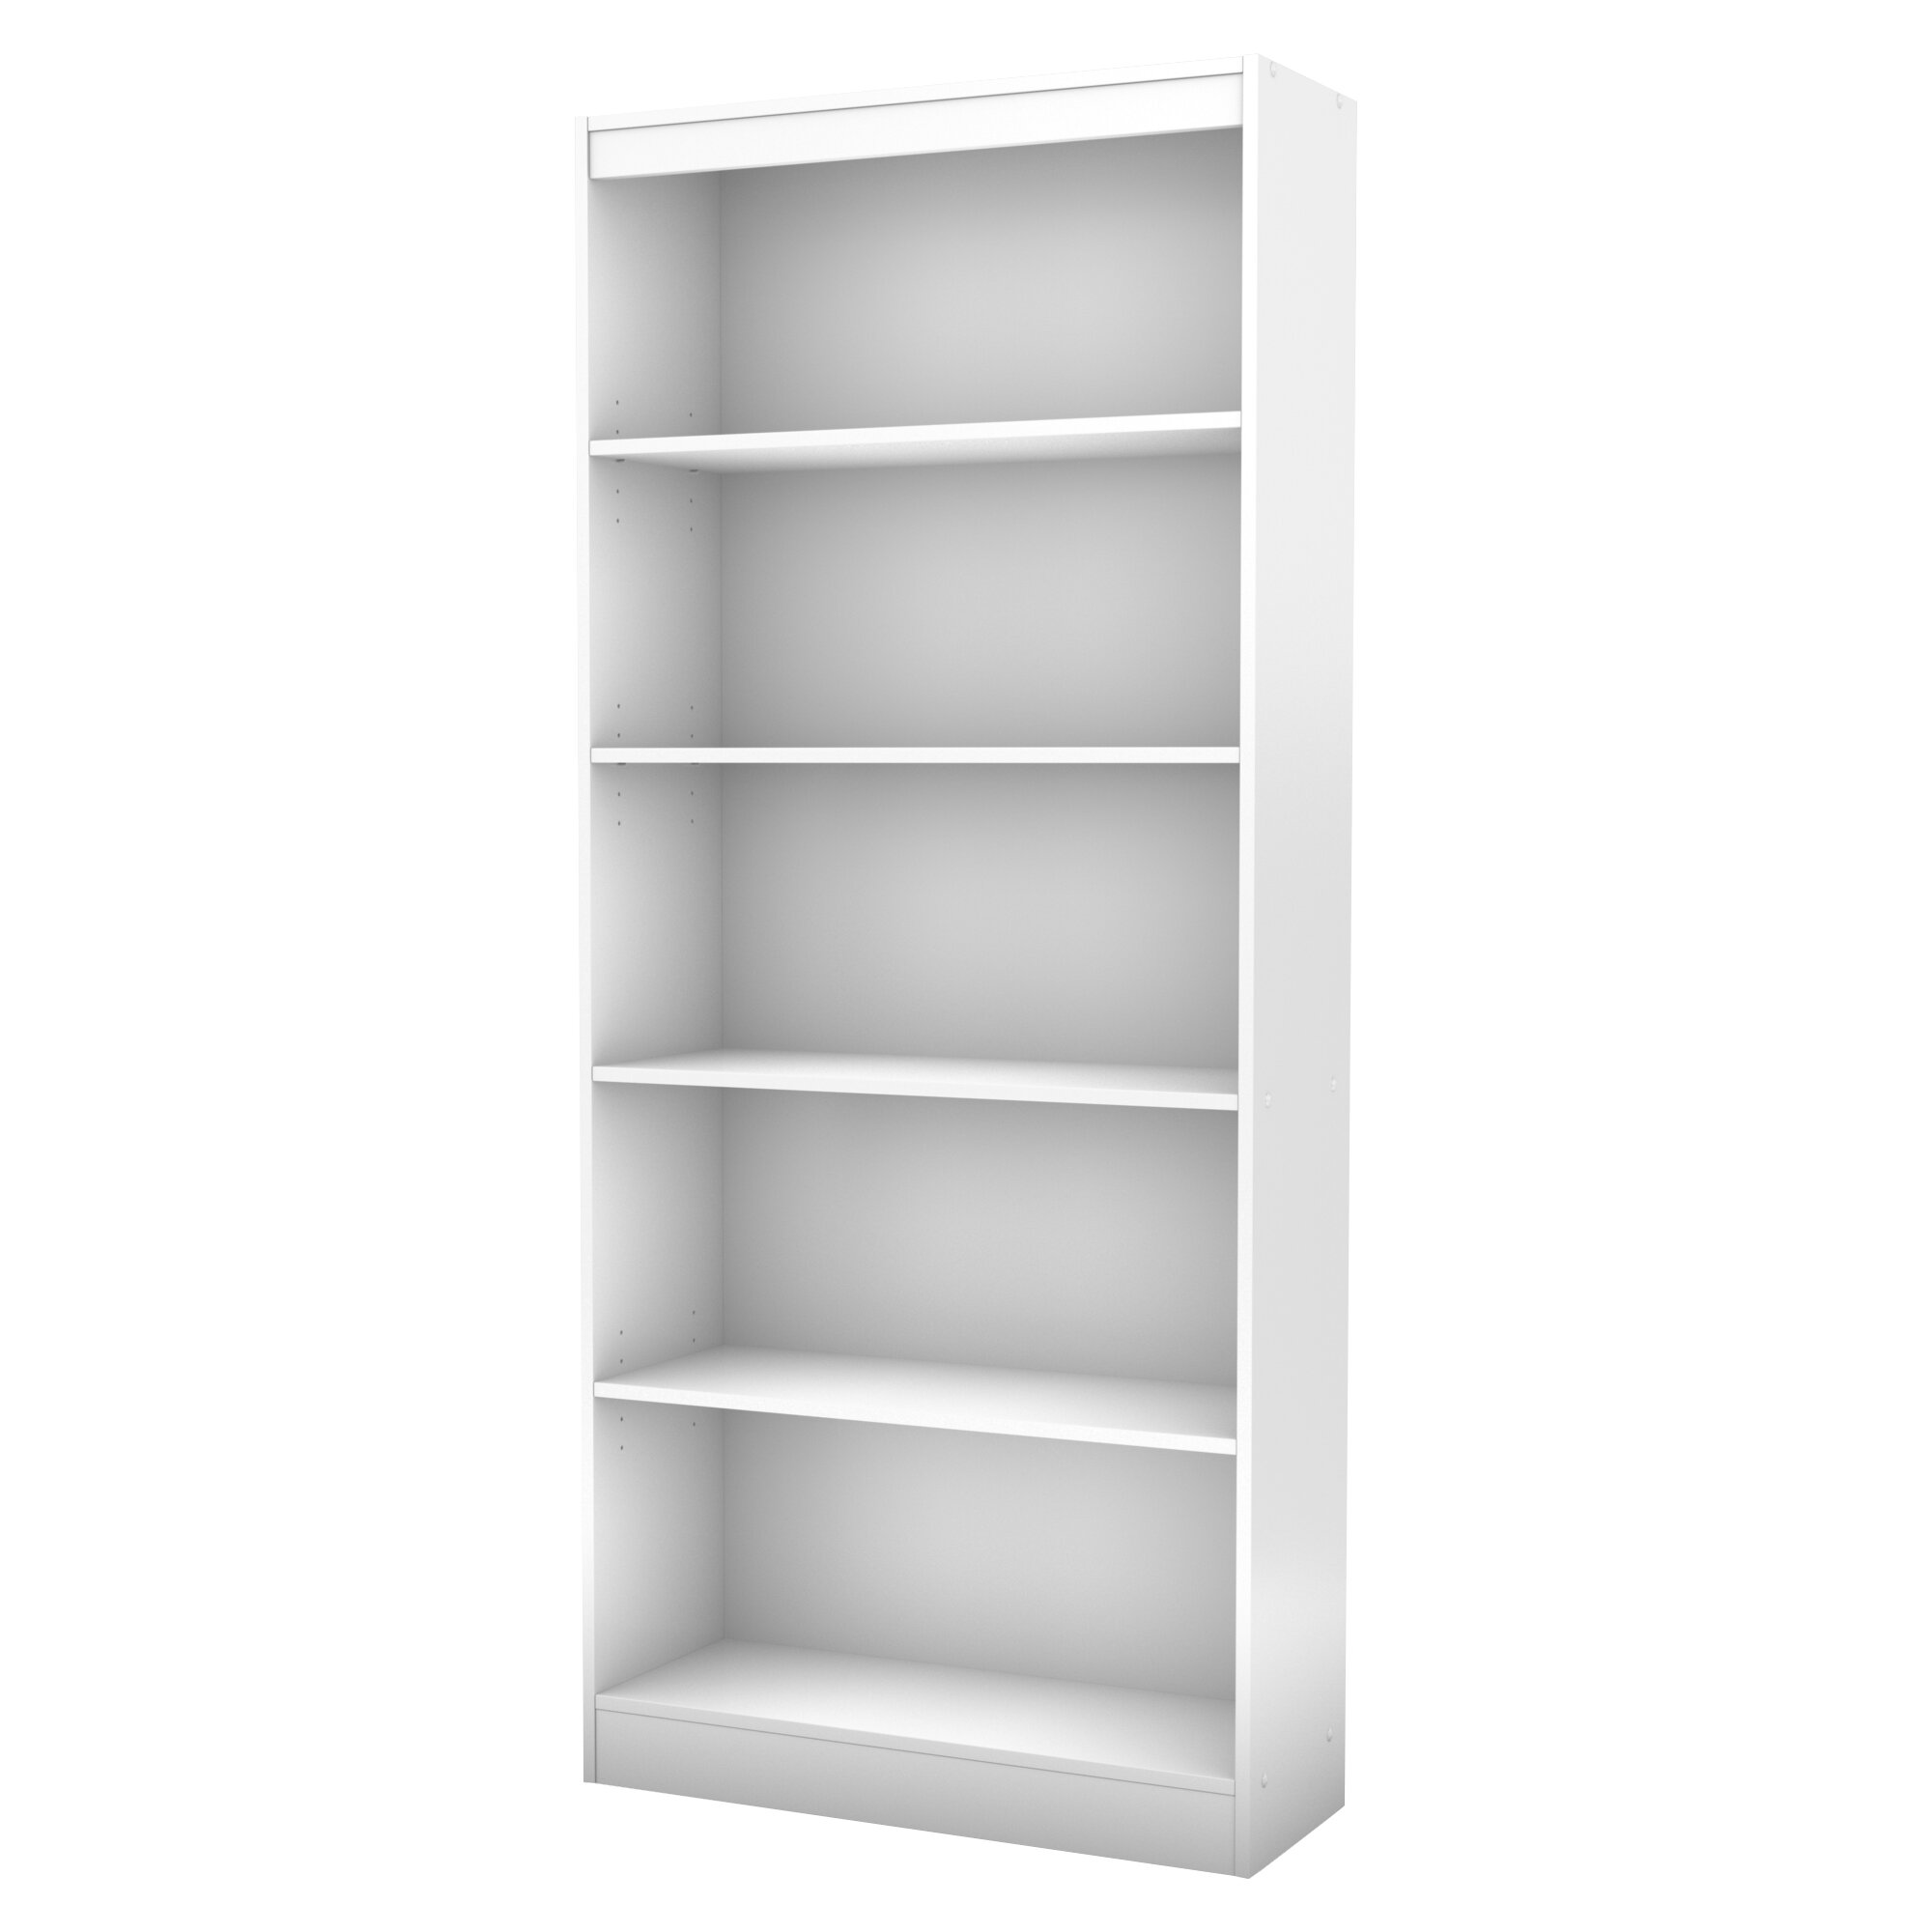 "South Shore Axess 68.75"" H x 28"" W Standard Bookcase & Reviews"